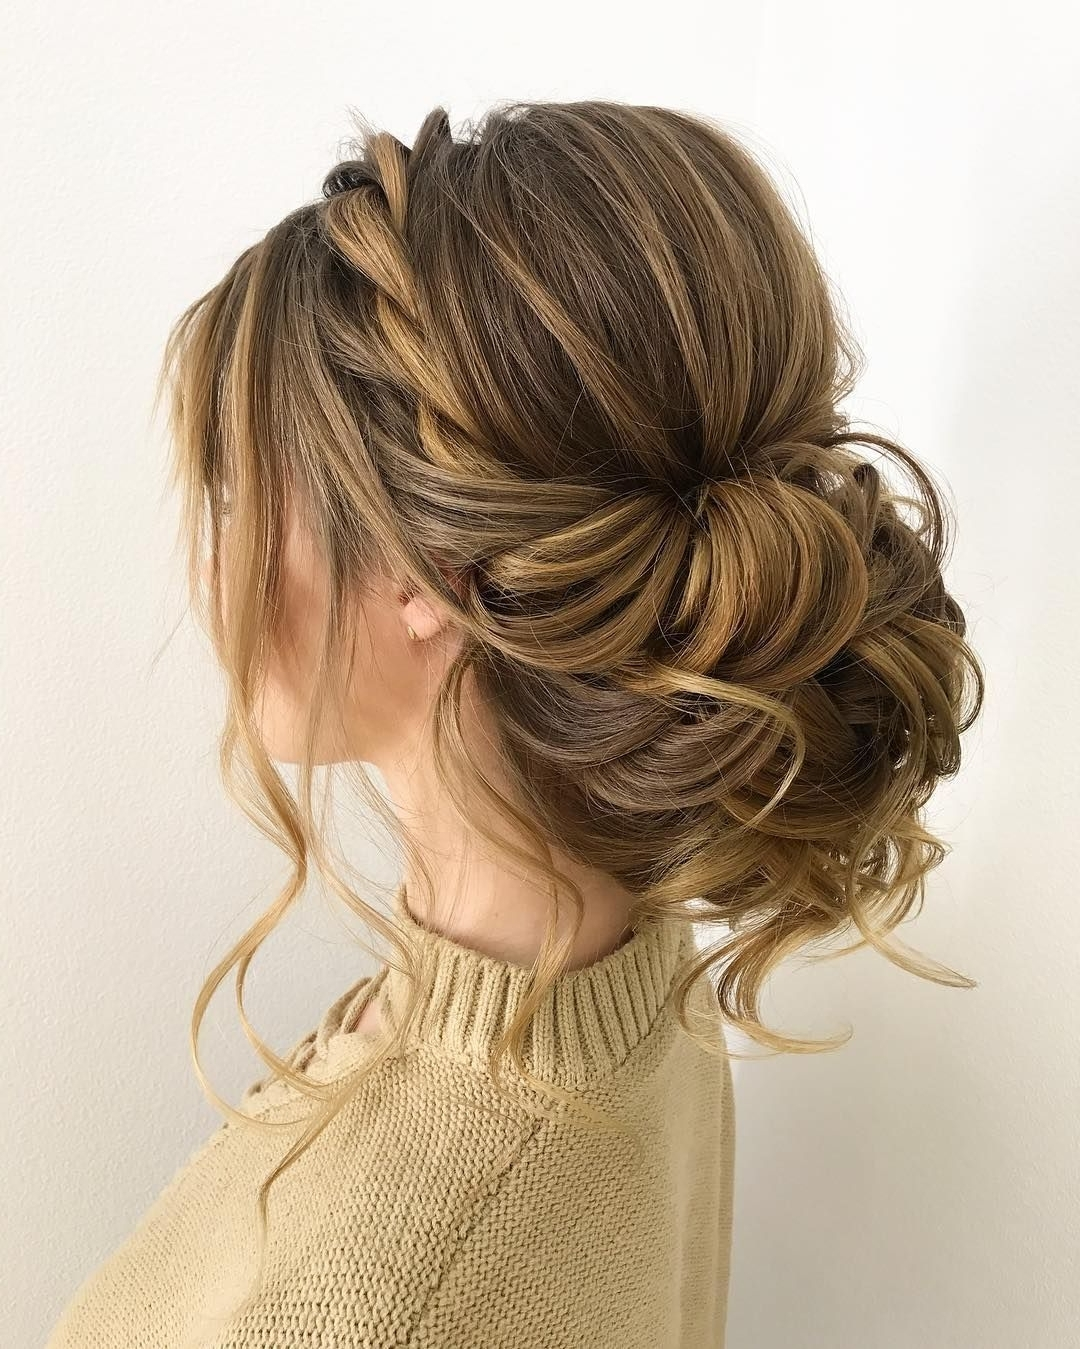 Gorgeous Wedding Updo Hairstyles That Will Wow Your Big Day For Bridal Updo Hairstyles For Long Hair (Gallery 10 of 15)